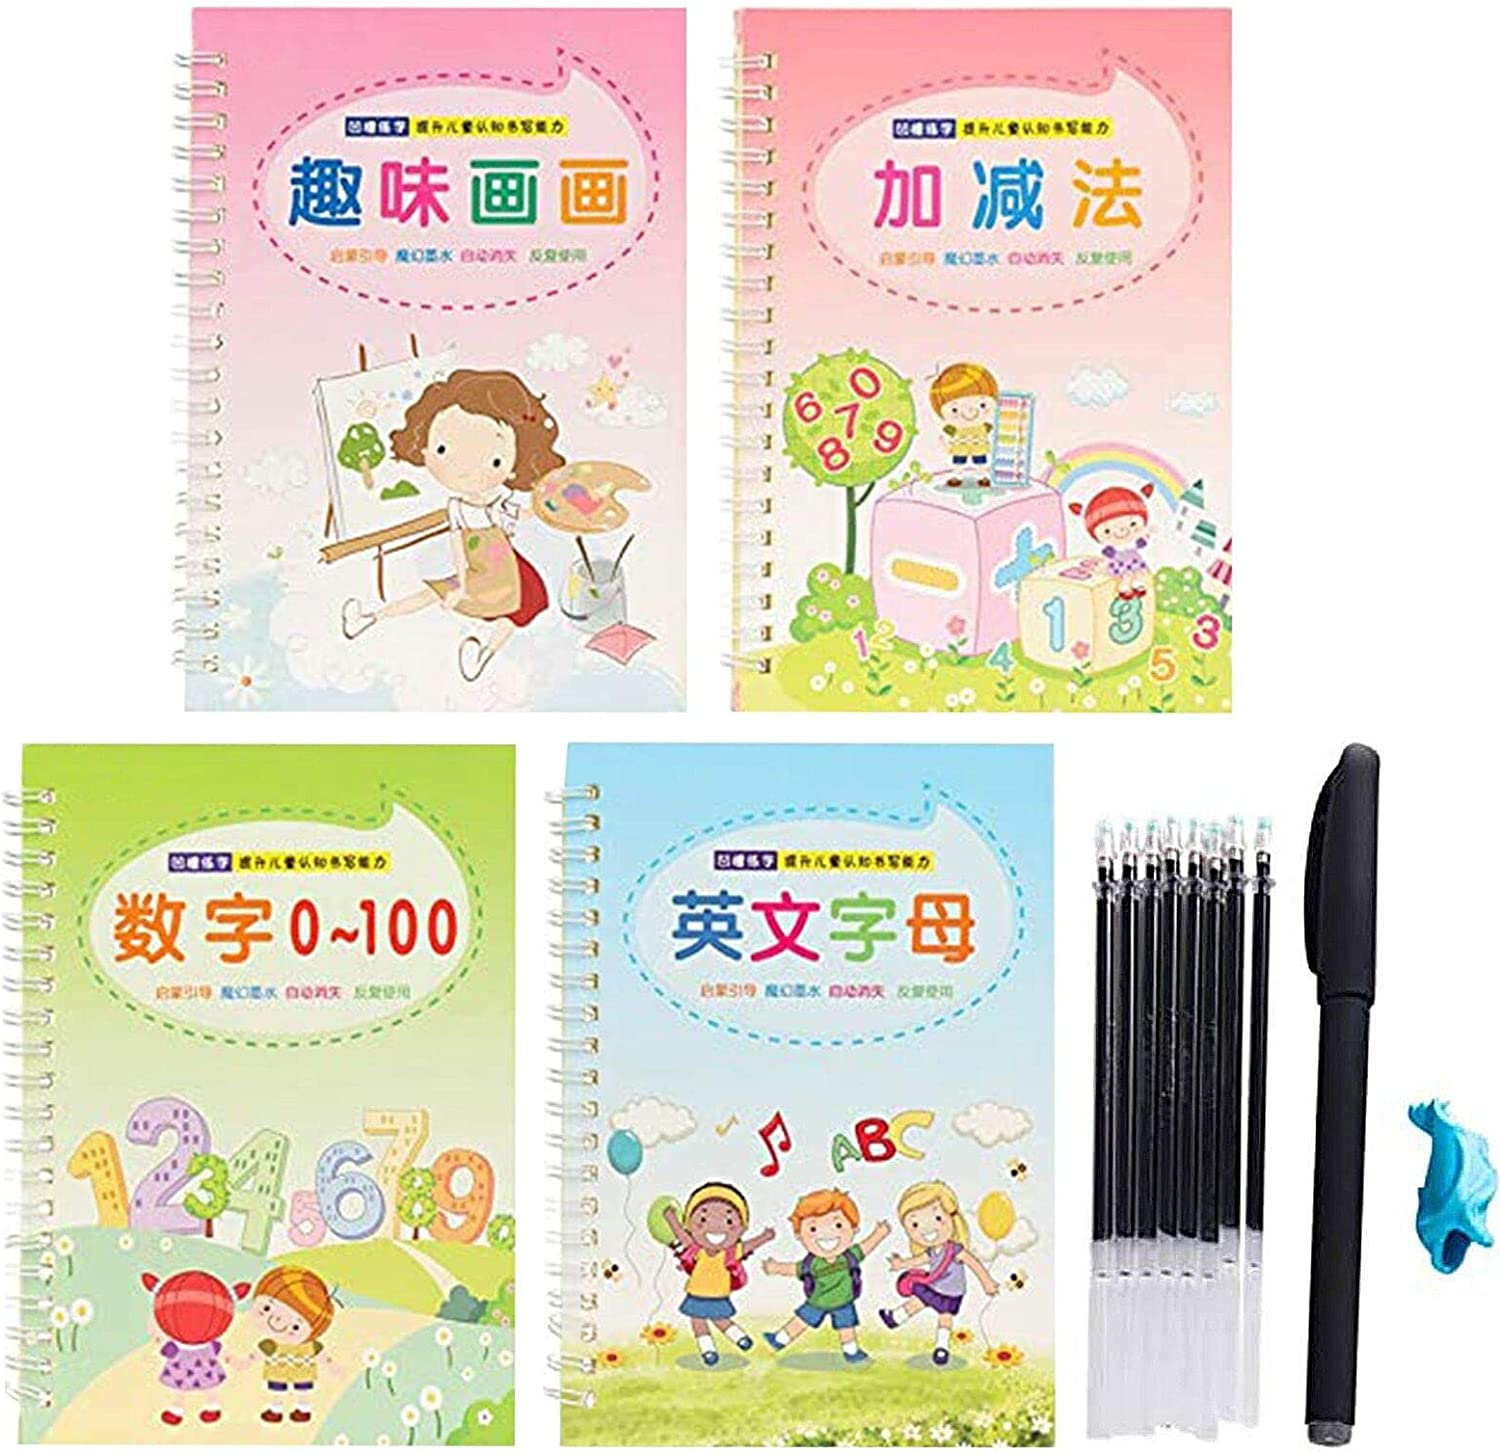 A:4 Copybook Magic Calligraphy Reused Handwriting Practice Calligraphy Handwriting for Kids Pen and Copybook Writing automatically disappear after dry